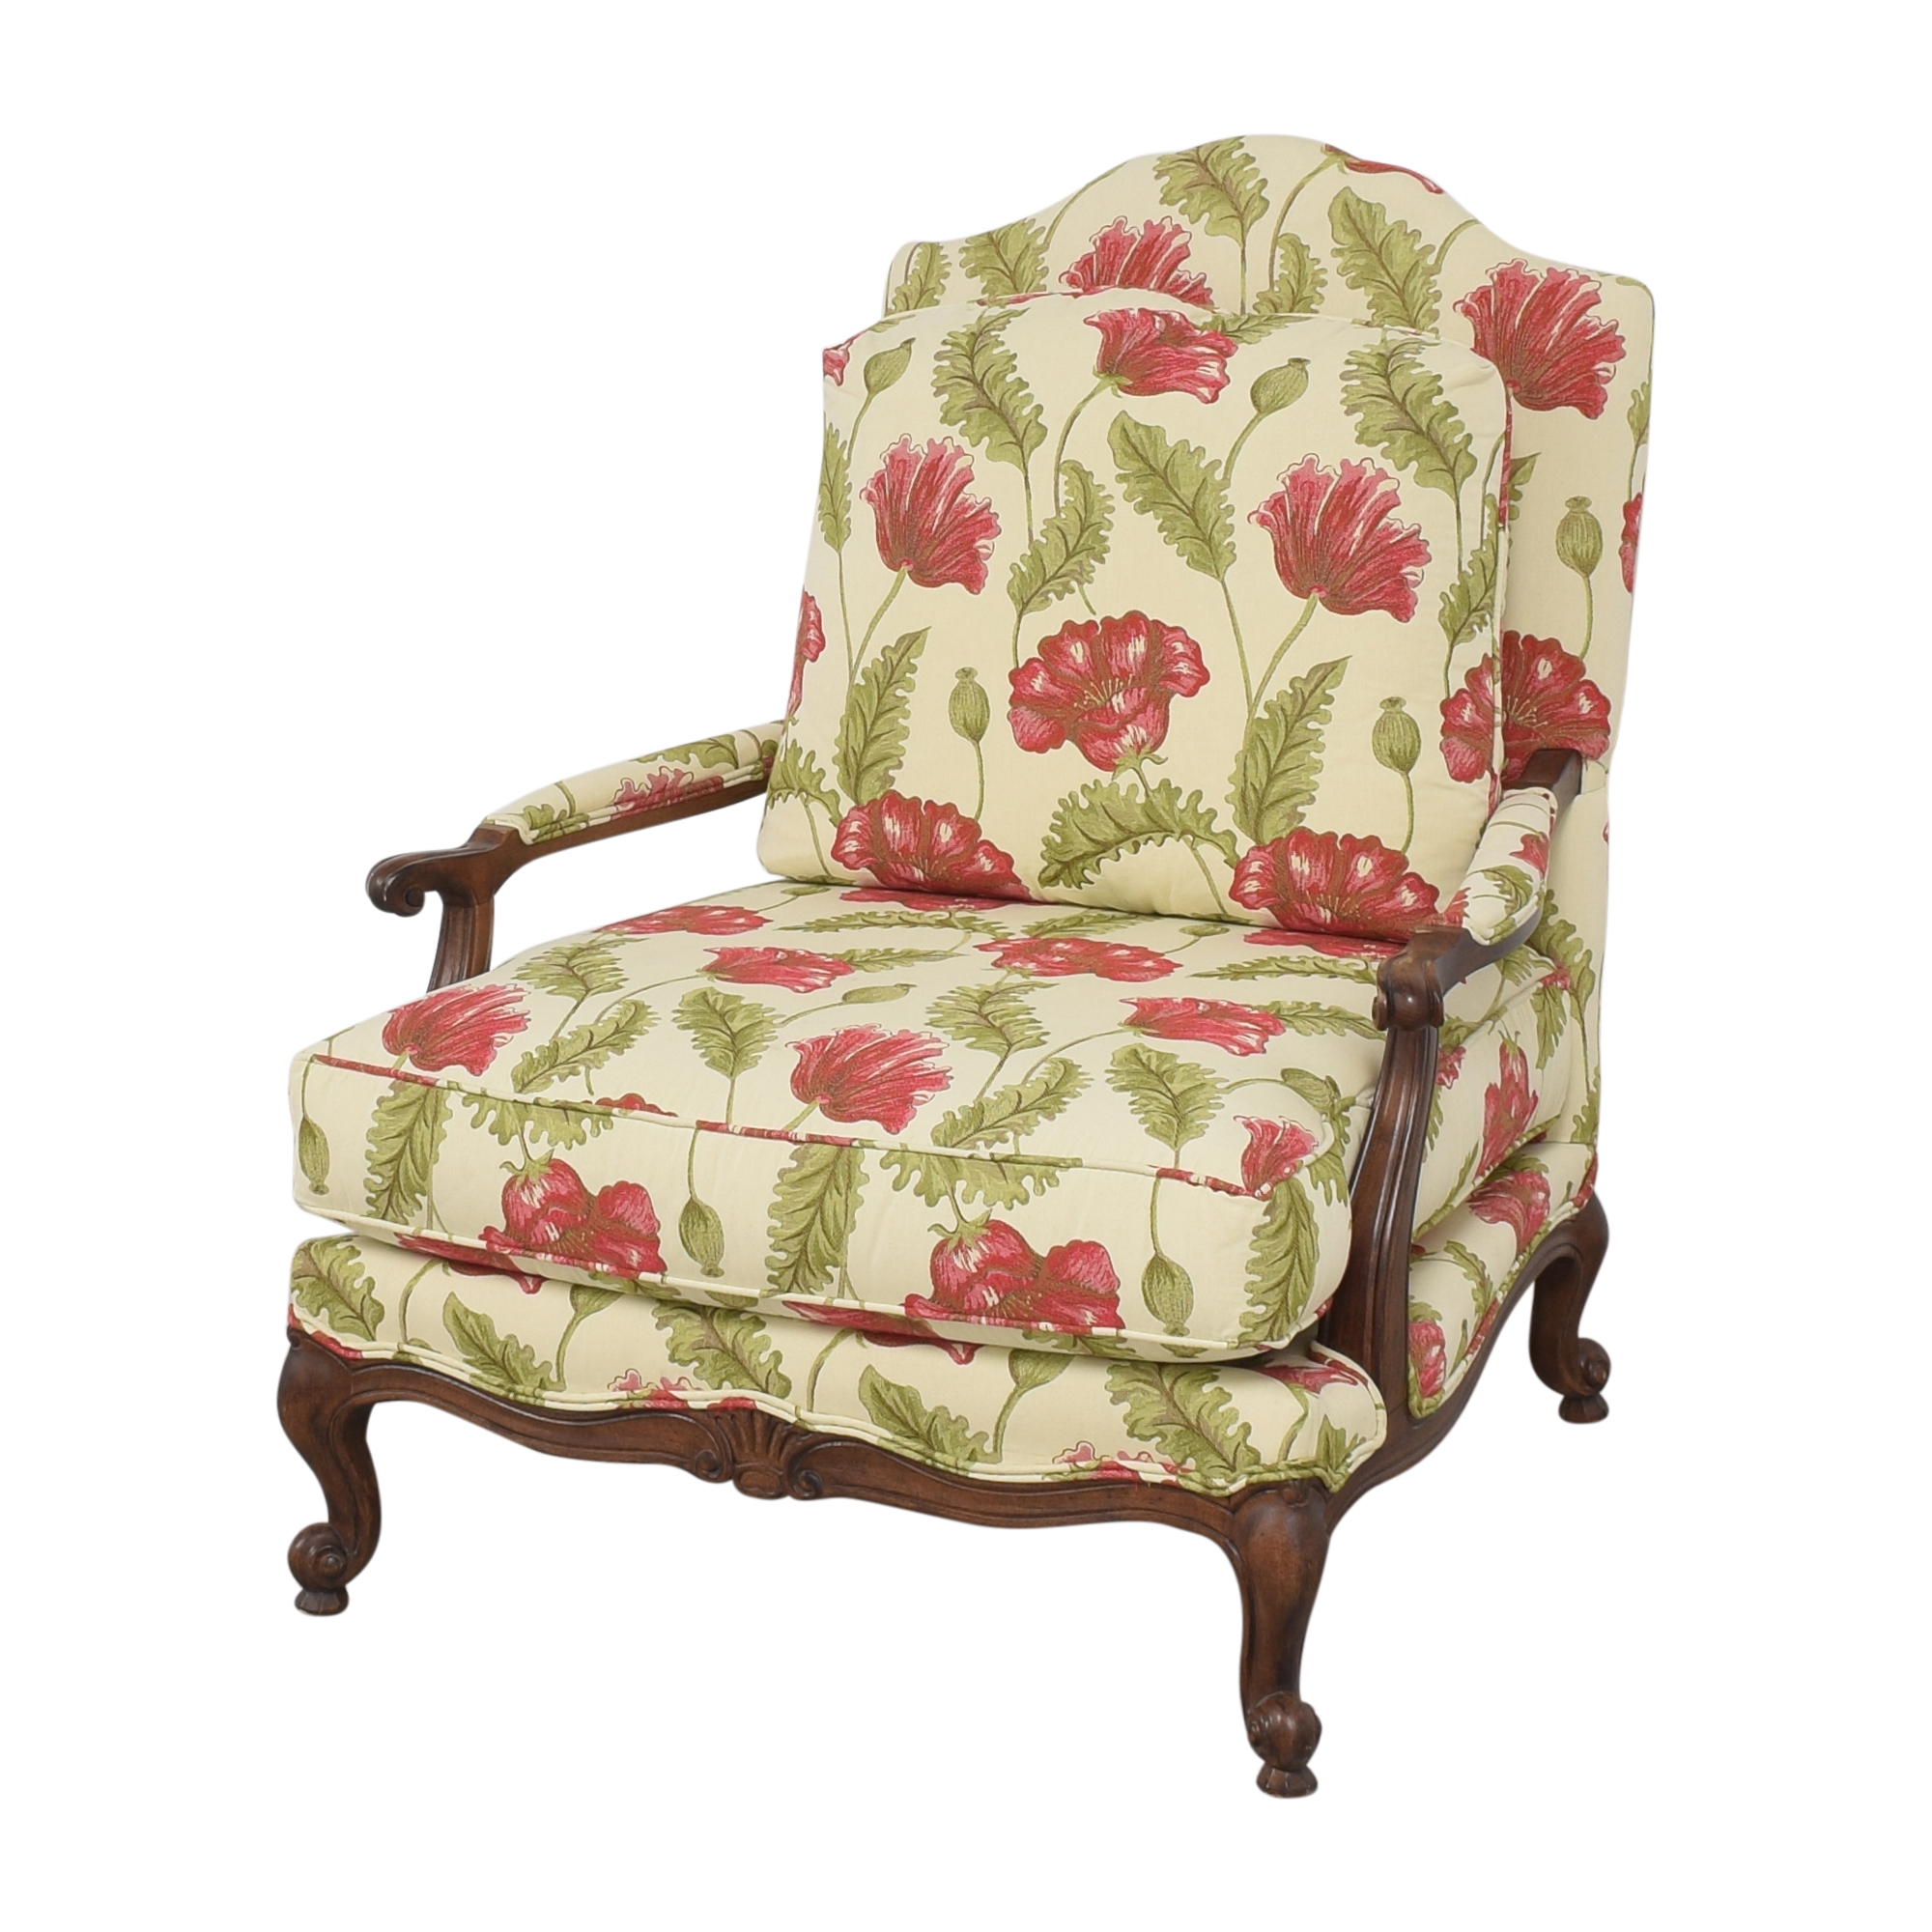 Clayton Marcus Clayton Marcus Floral Chair with Ottoman for sale